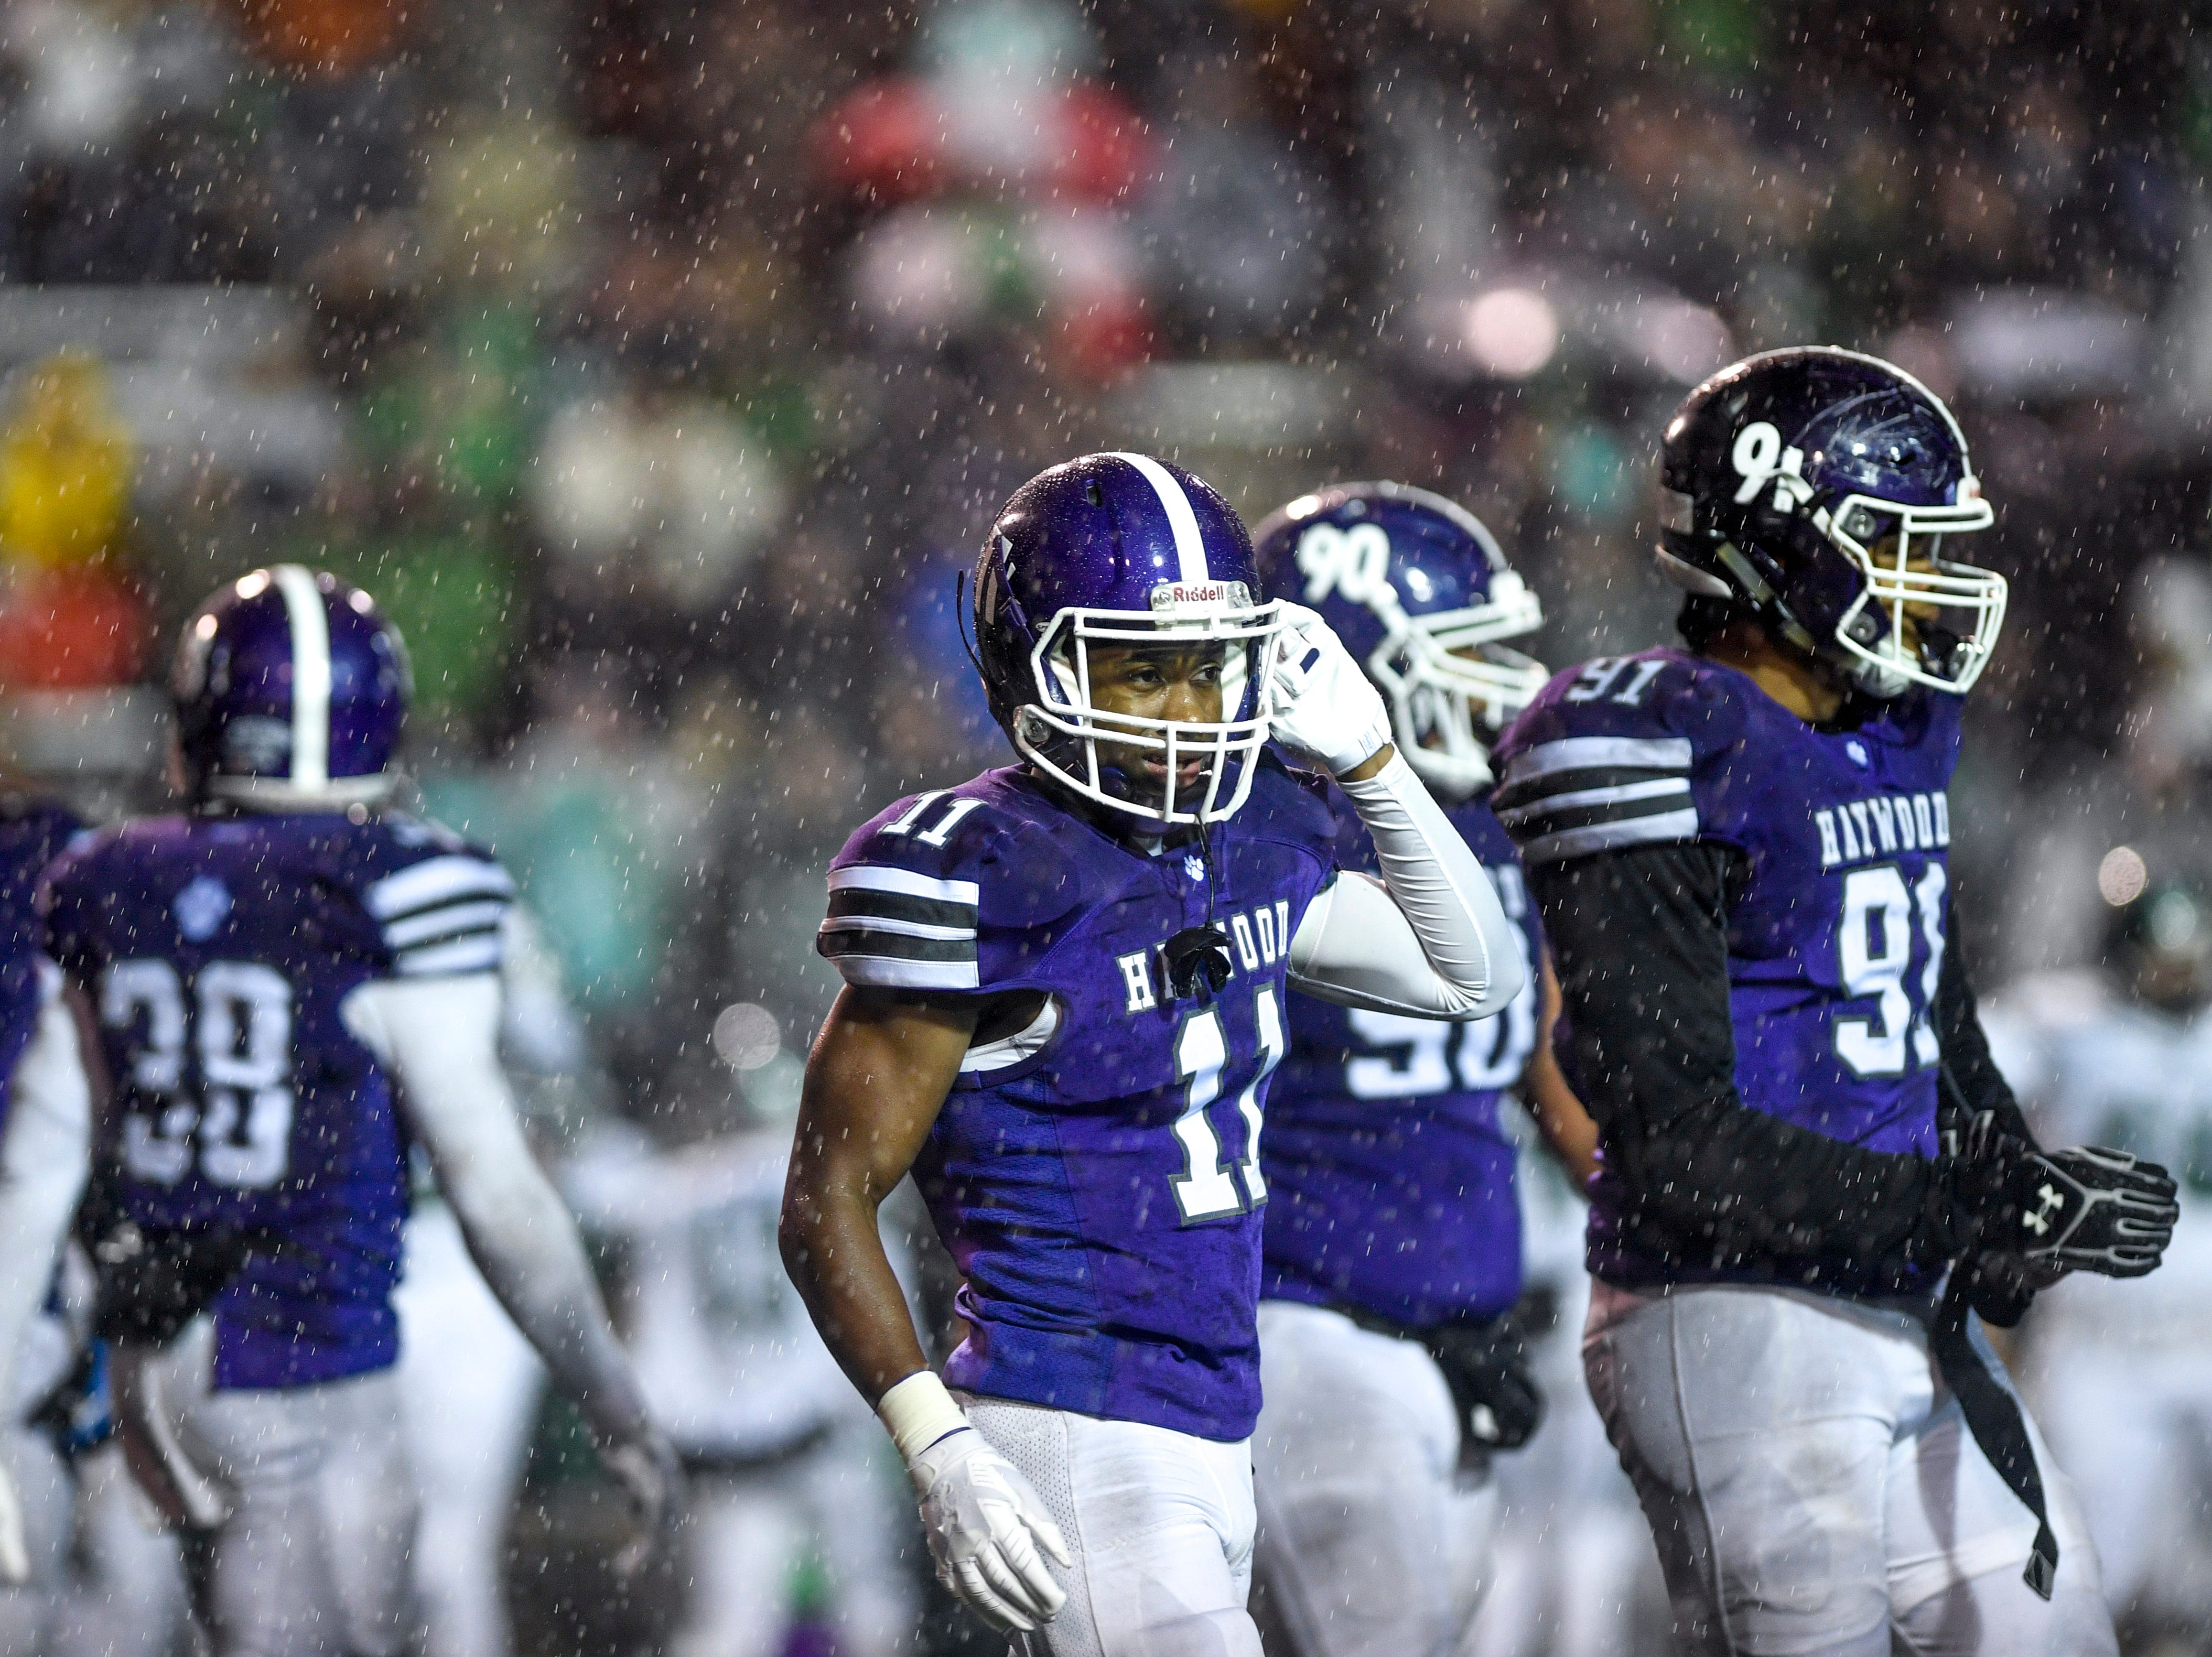 Haywood's Jakobe Swift (11) pulls off his helmet strap in the last few seconds of the game during the Class 4A Blue Cross Bowl between Haywood and Greeneville at Tennessee Tech's Tucker Stadium in Cookeville, Tenn., on Thursday, Nov. 29, 2018.